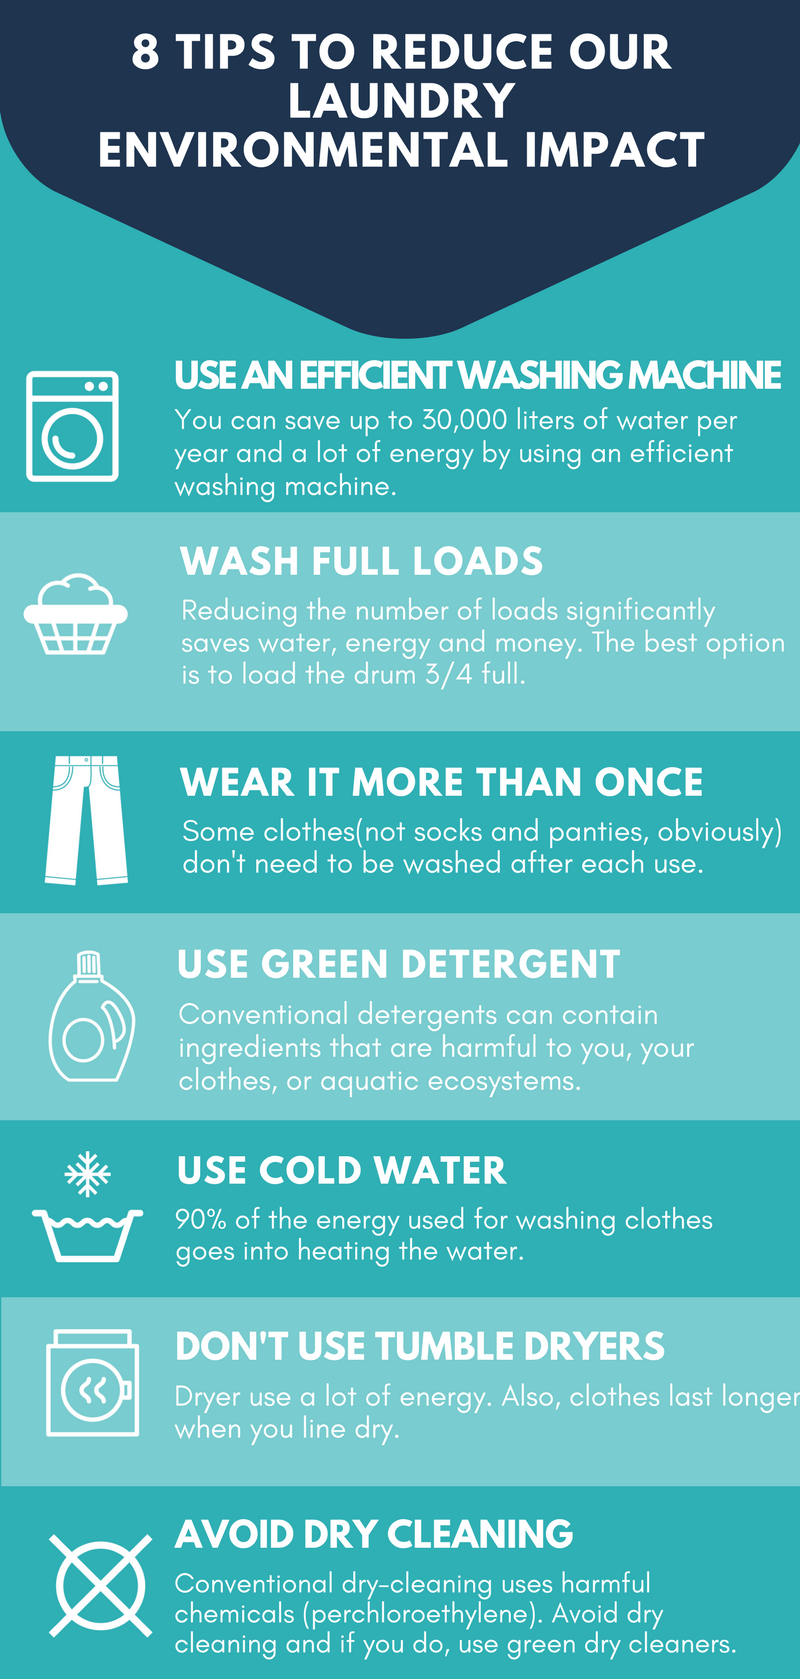 7 tips to reduce our laundry impact